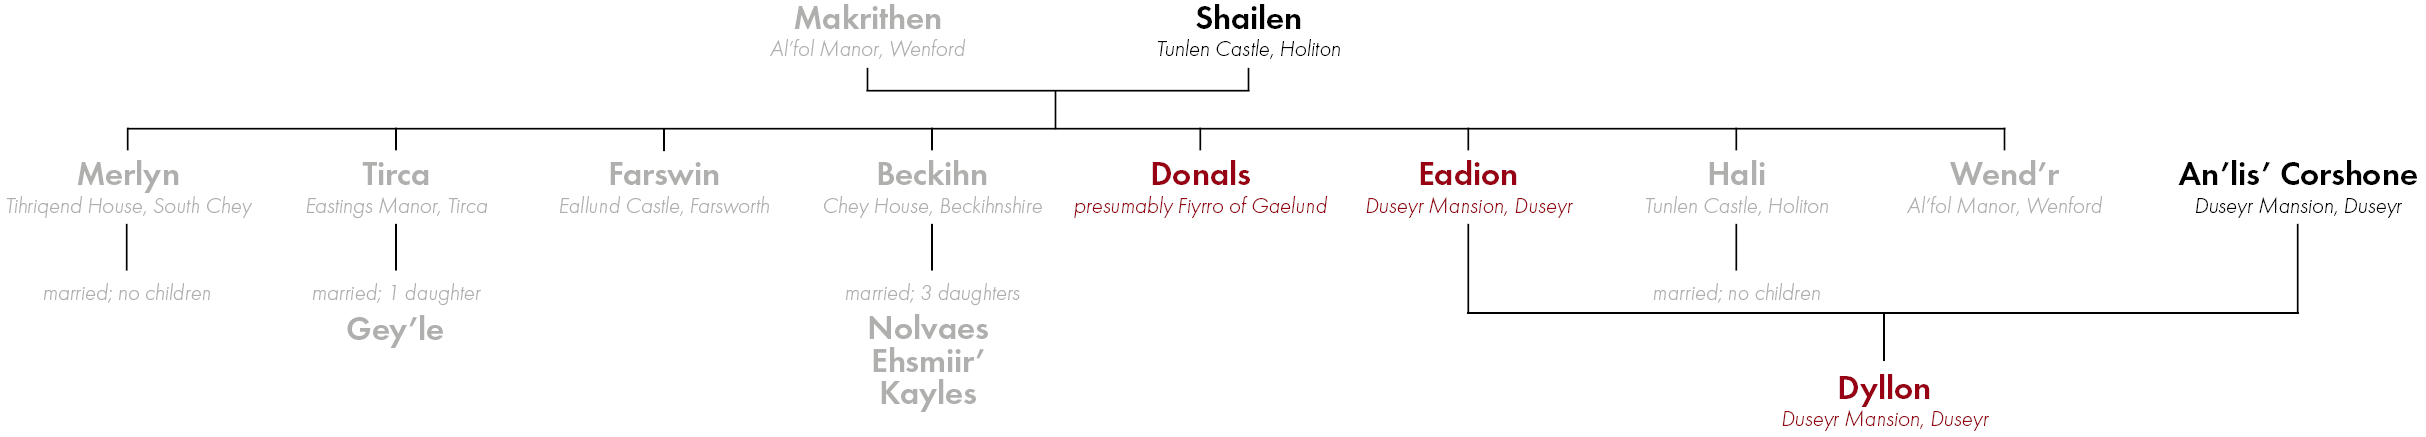 The Lineage of Makrithen Nalchios by the end of the Acquisition (click to enlarge) Black names survived; Red names are missing (presumed dead); Grey names are deceased.